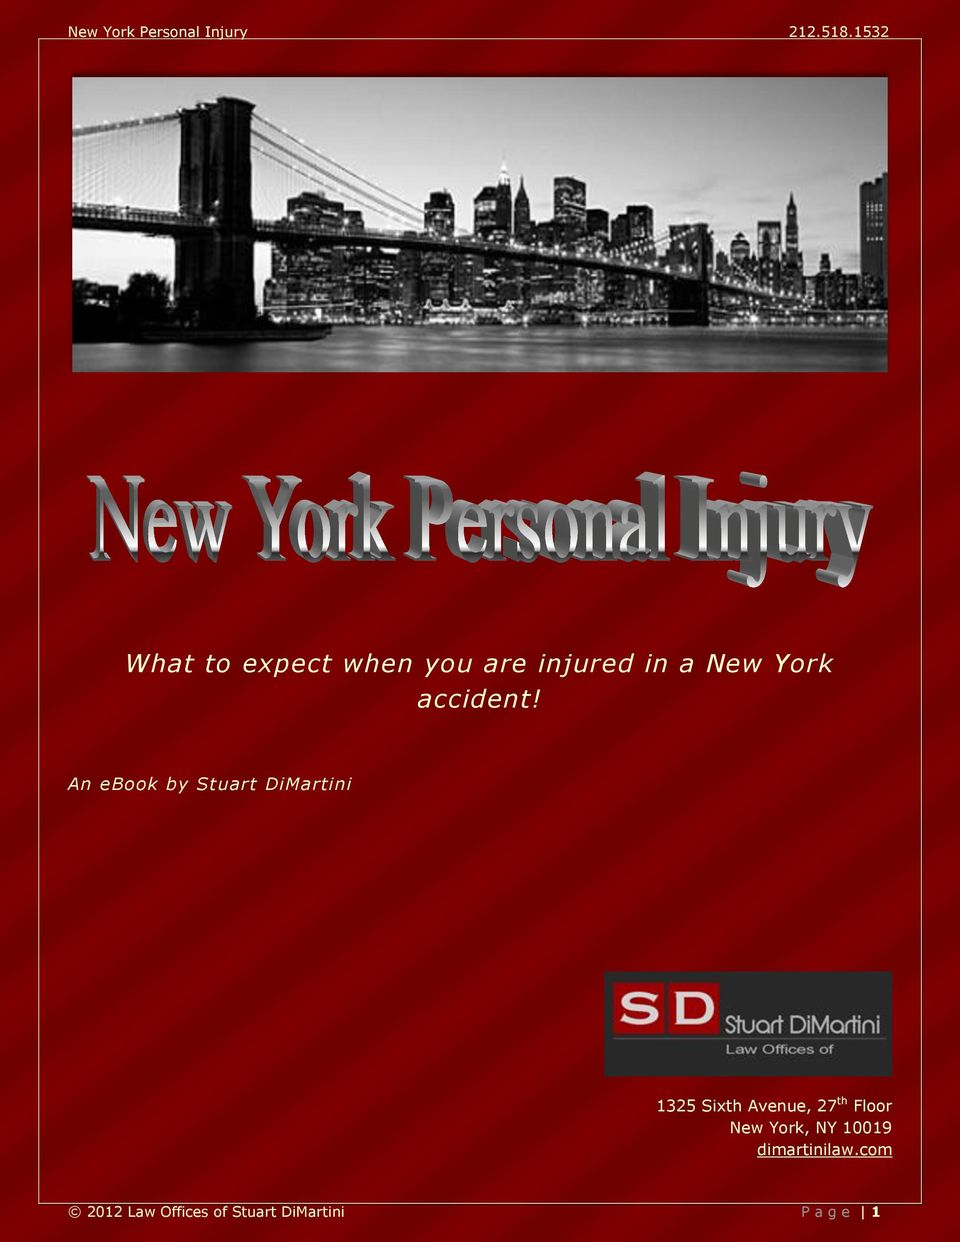 An ebook by Stuart DiMartini 1325 Sixth Avenue, 27